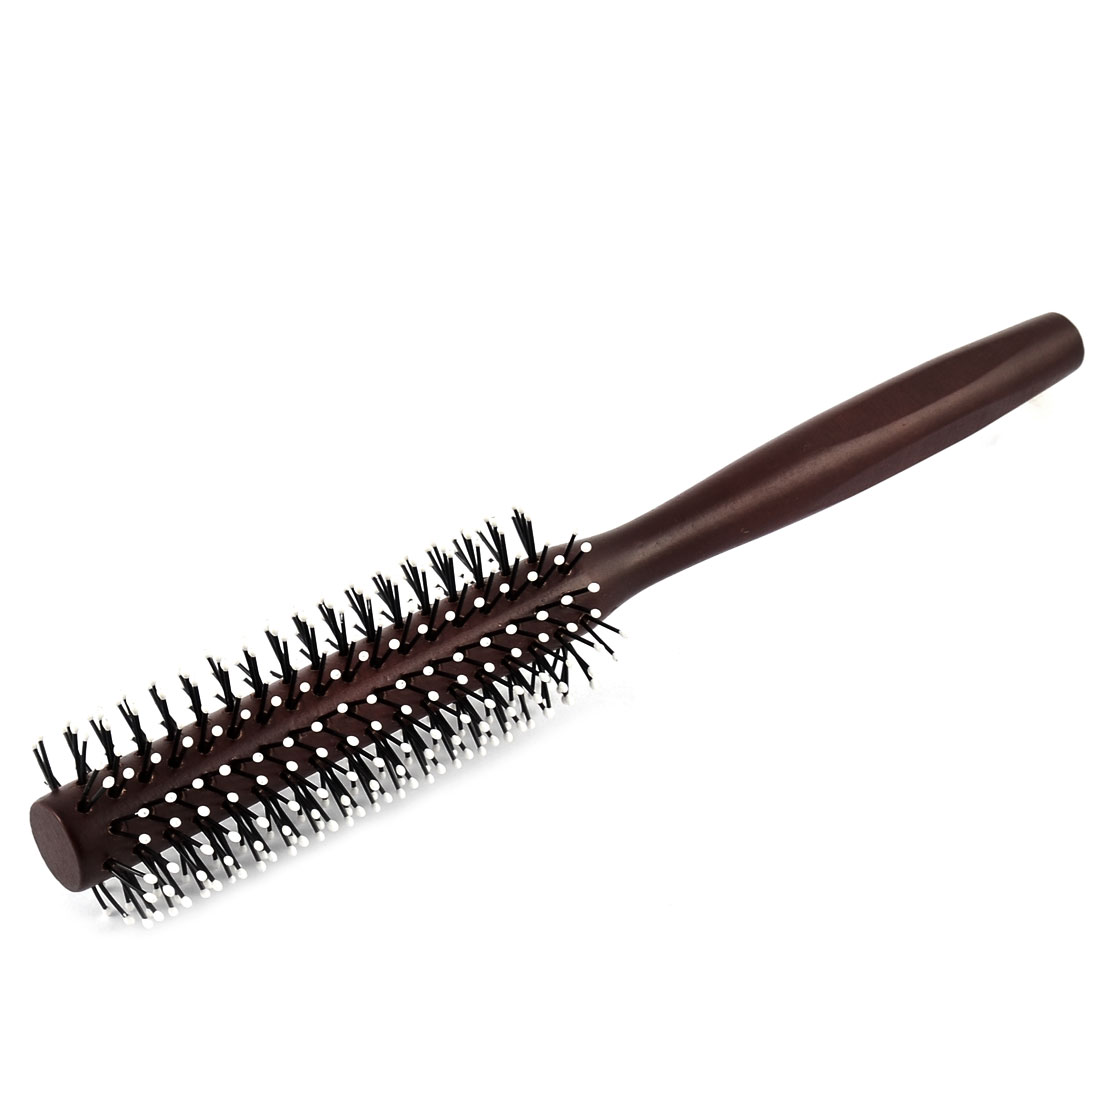 Wooden Handle Plastic Teeth Flexible Hair Care Massage Brush Curly Roll Comb Dark Red